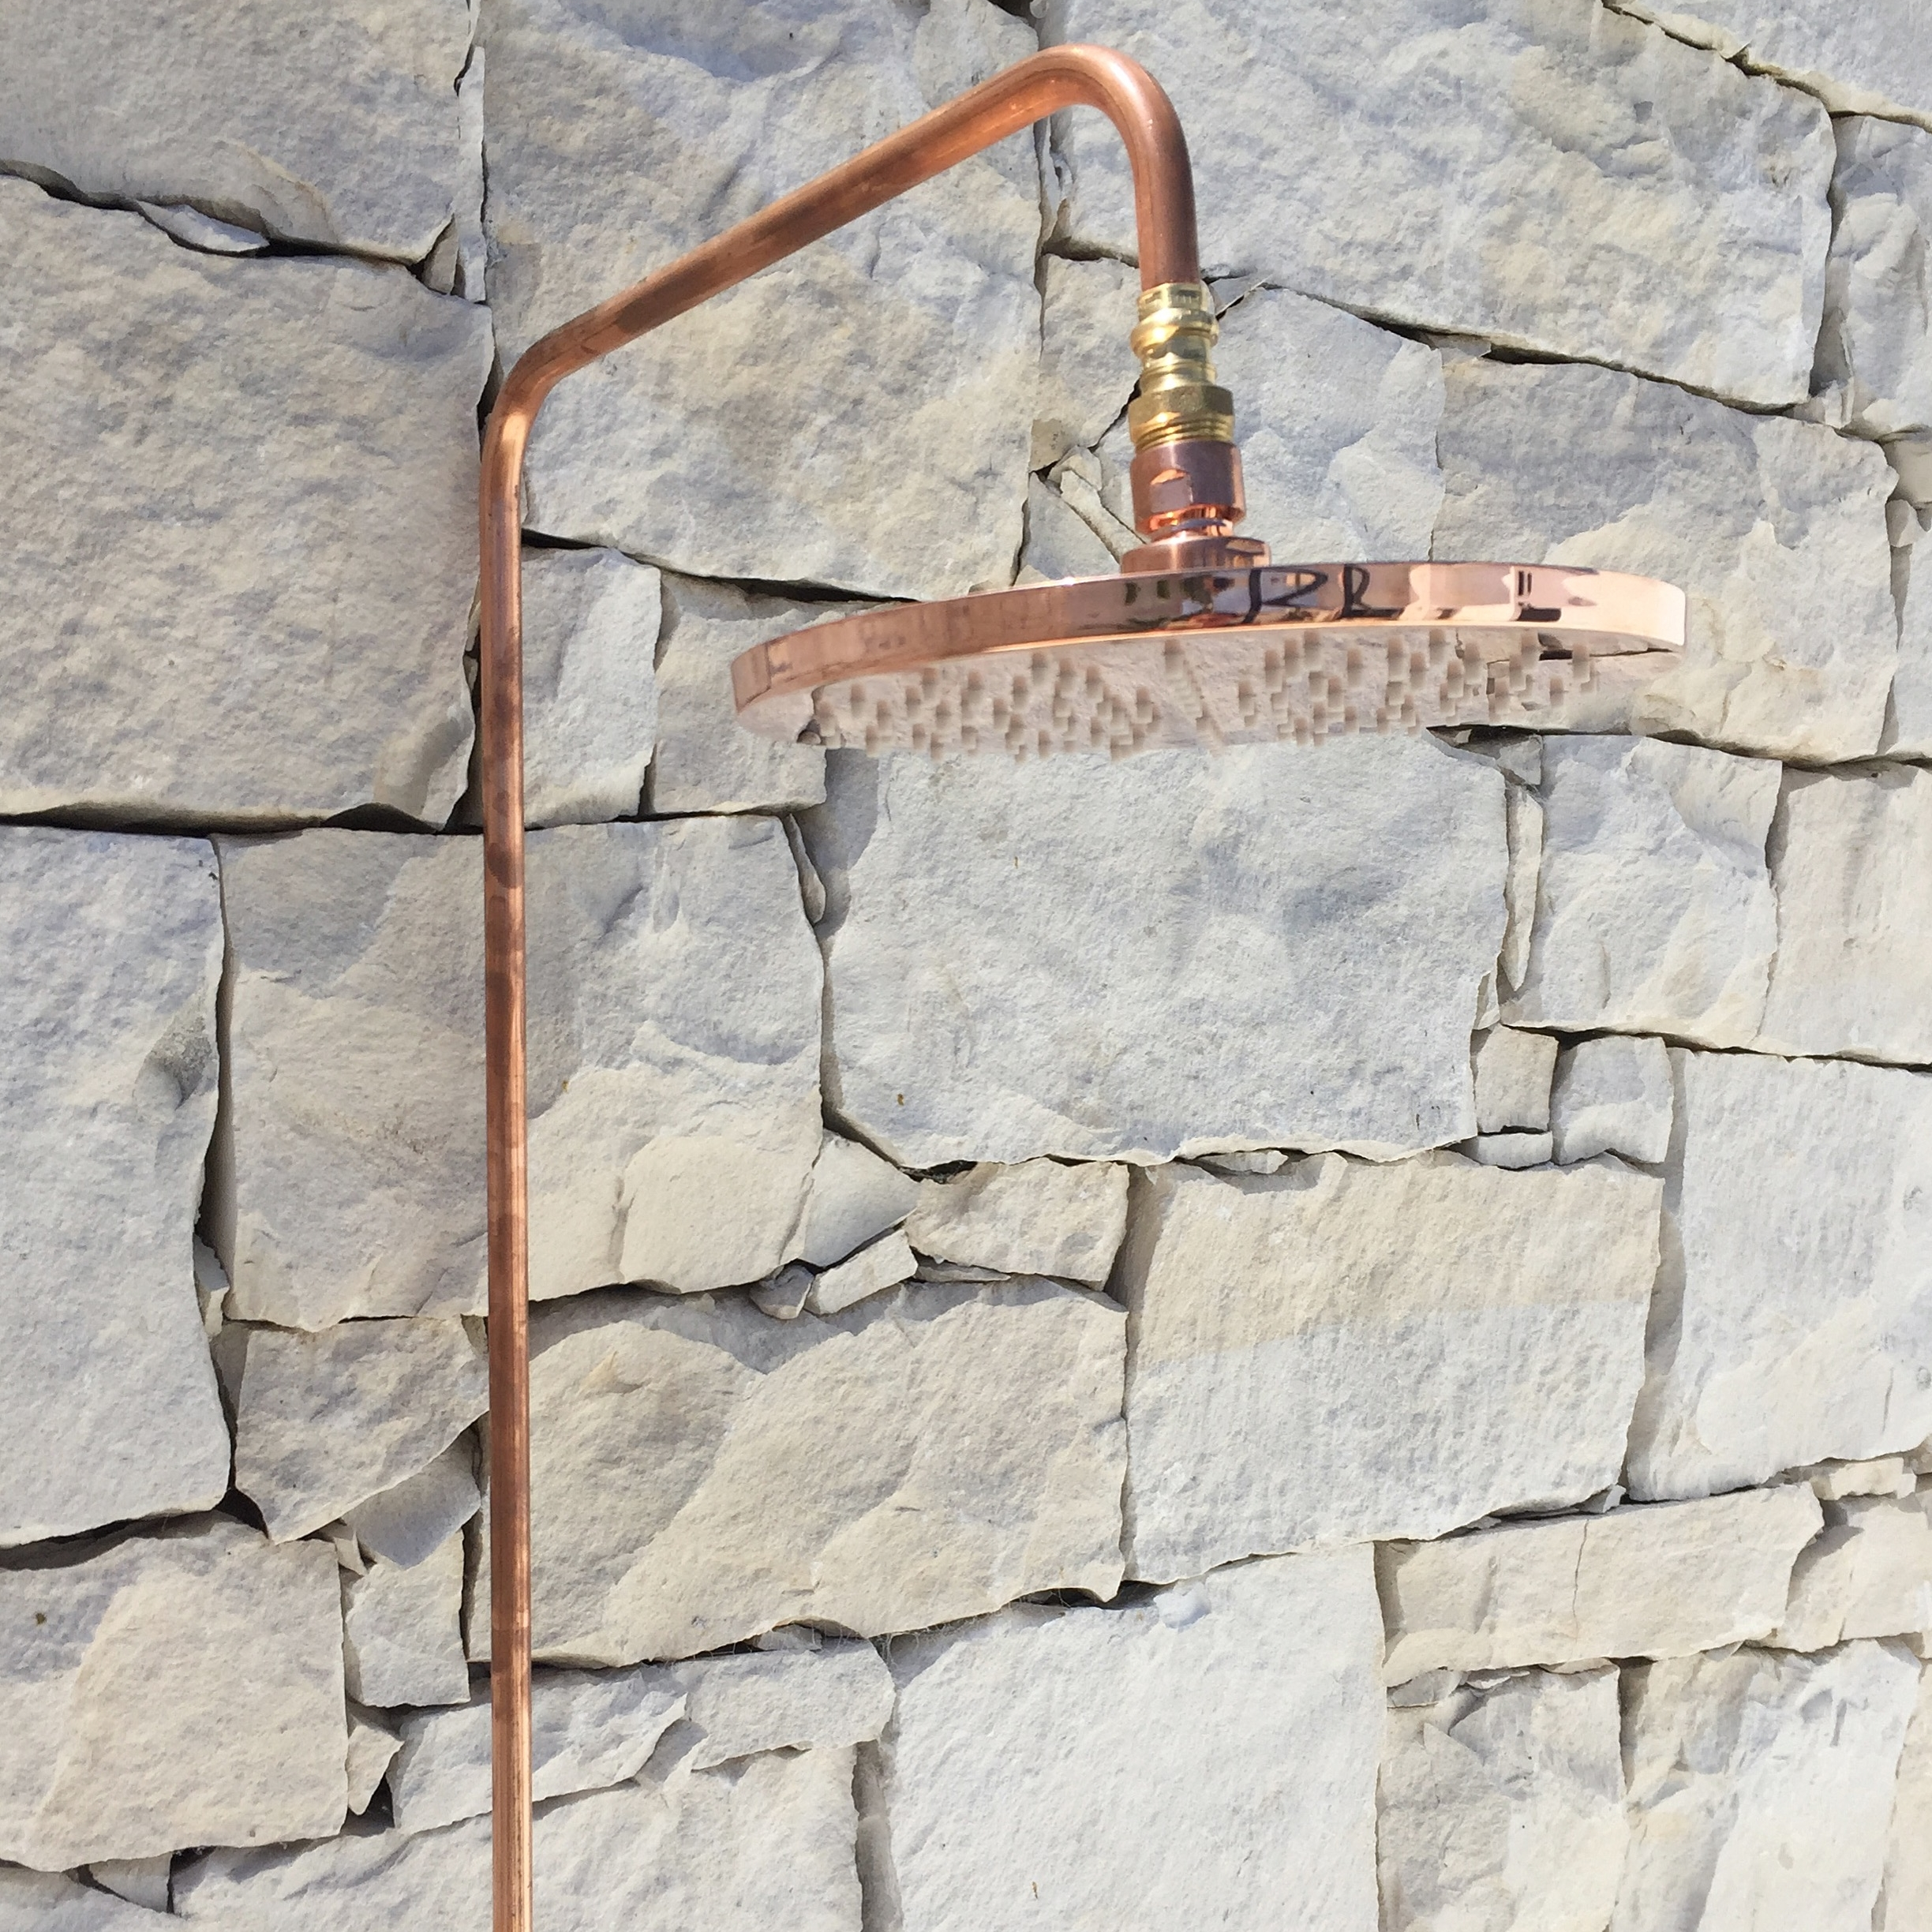 Raw Copper - SGO Outdoor Shower.jpg